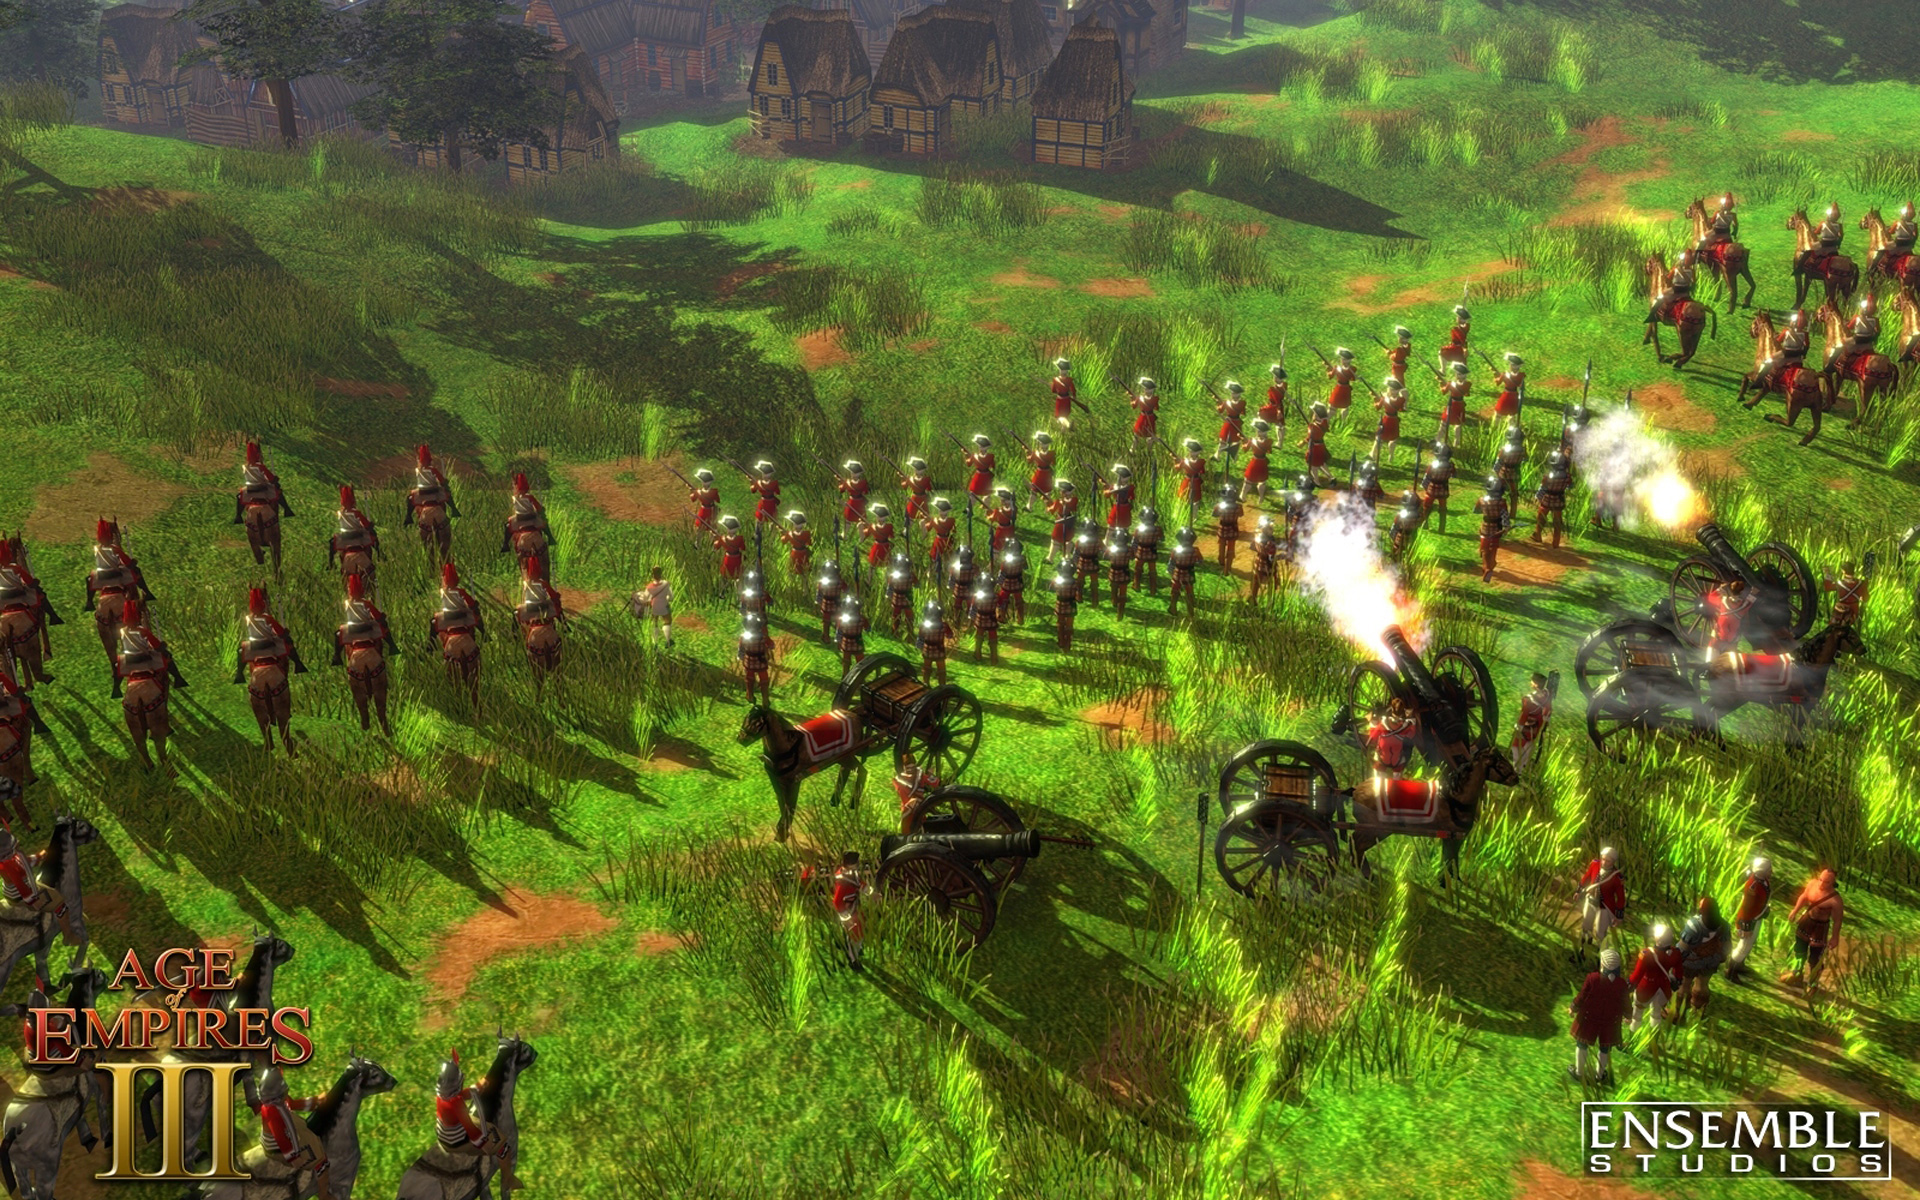 Free Age of Empires III Wallpaper in 1920x1200